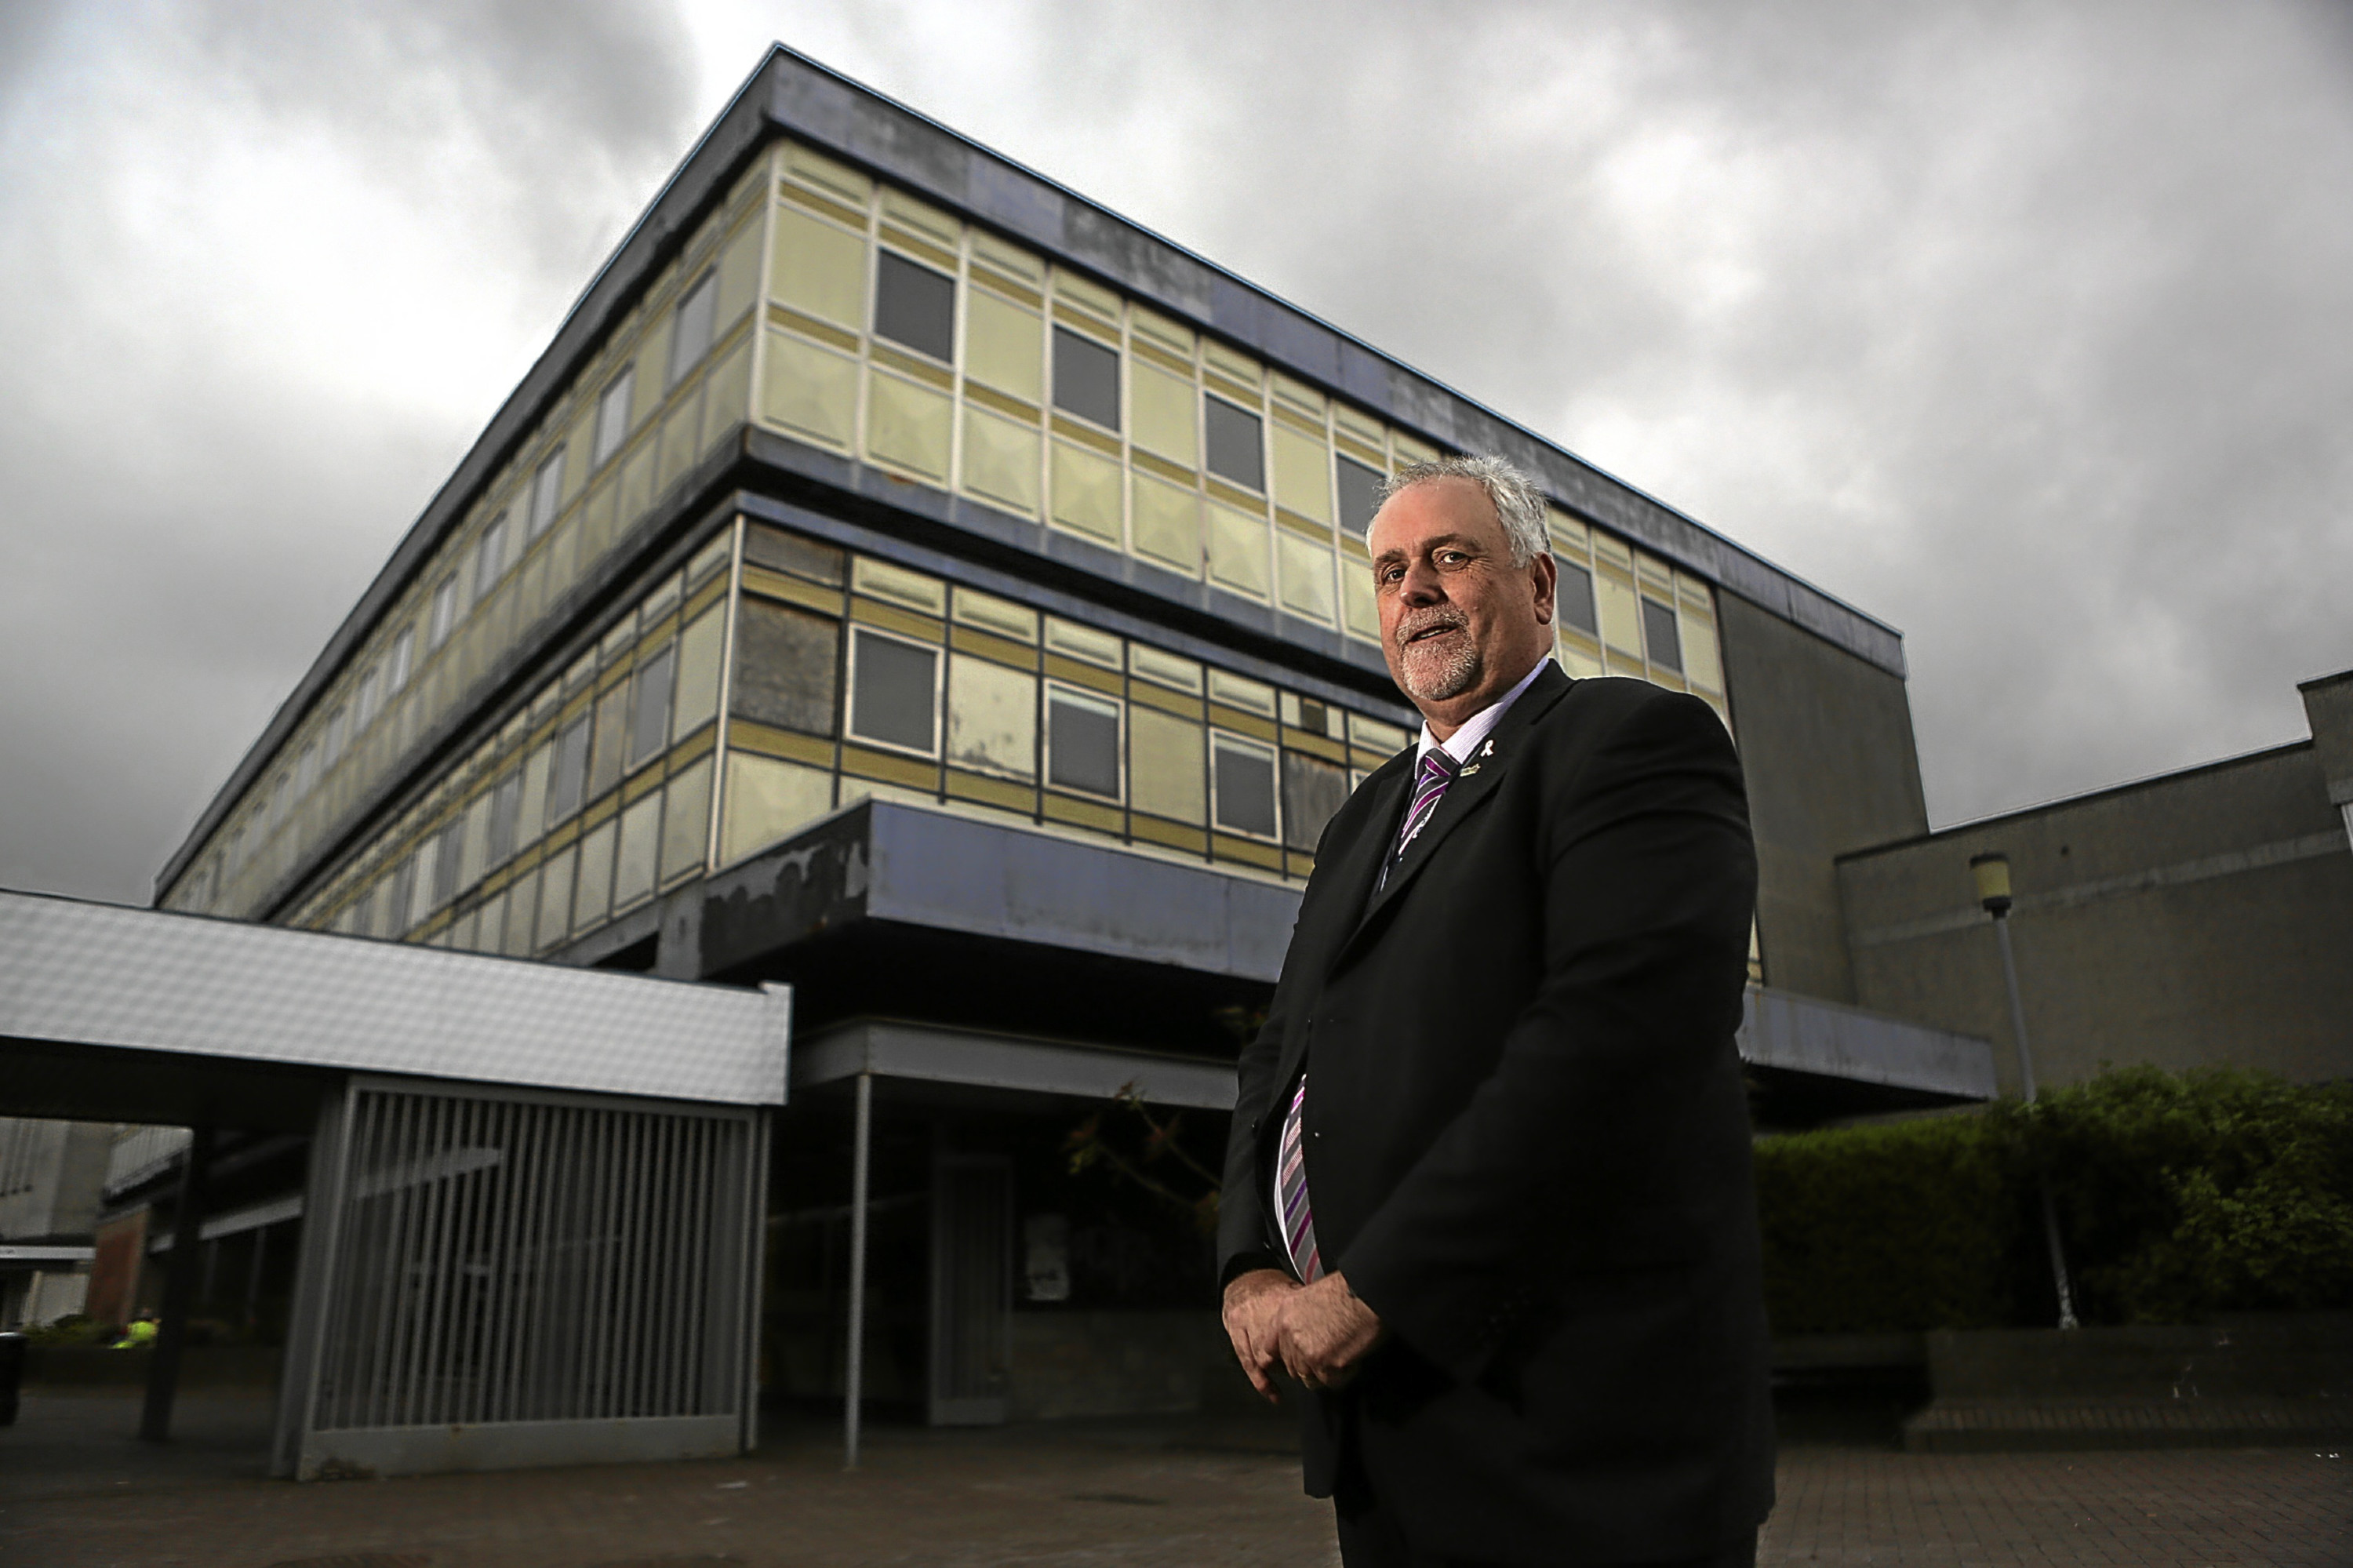 Kris Miller, Courier, 24/05/16. Cllr Bill Brown outside the former co-op building in the Kingdom Shopping centre, Glenrothes. The building is marked to be demolished as part of the town centre regeneration